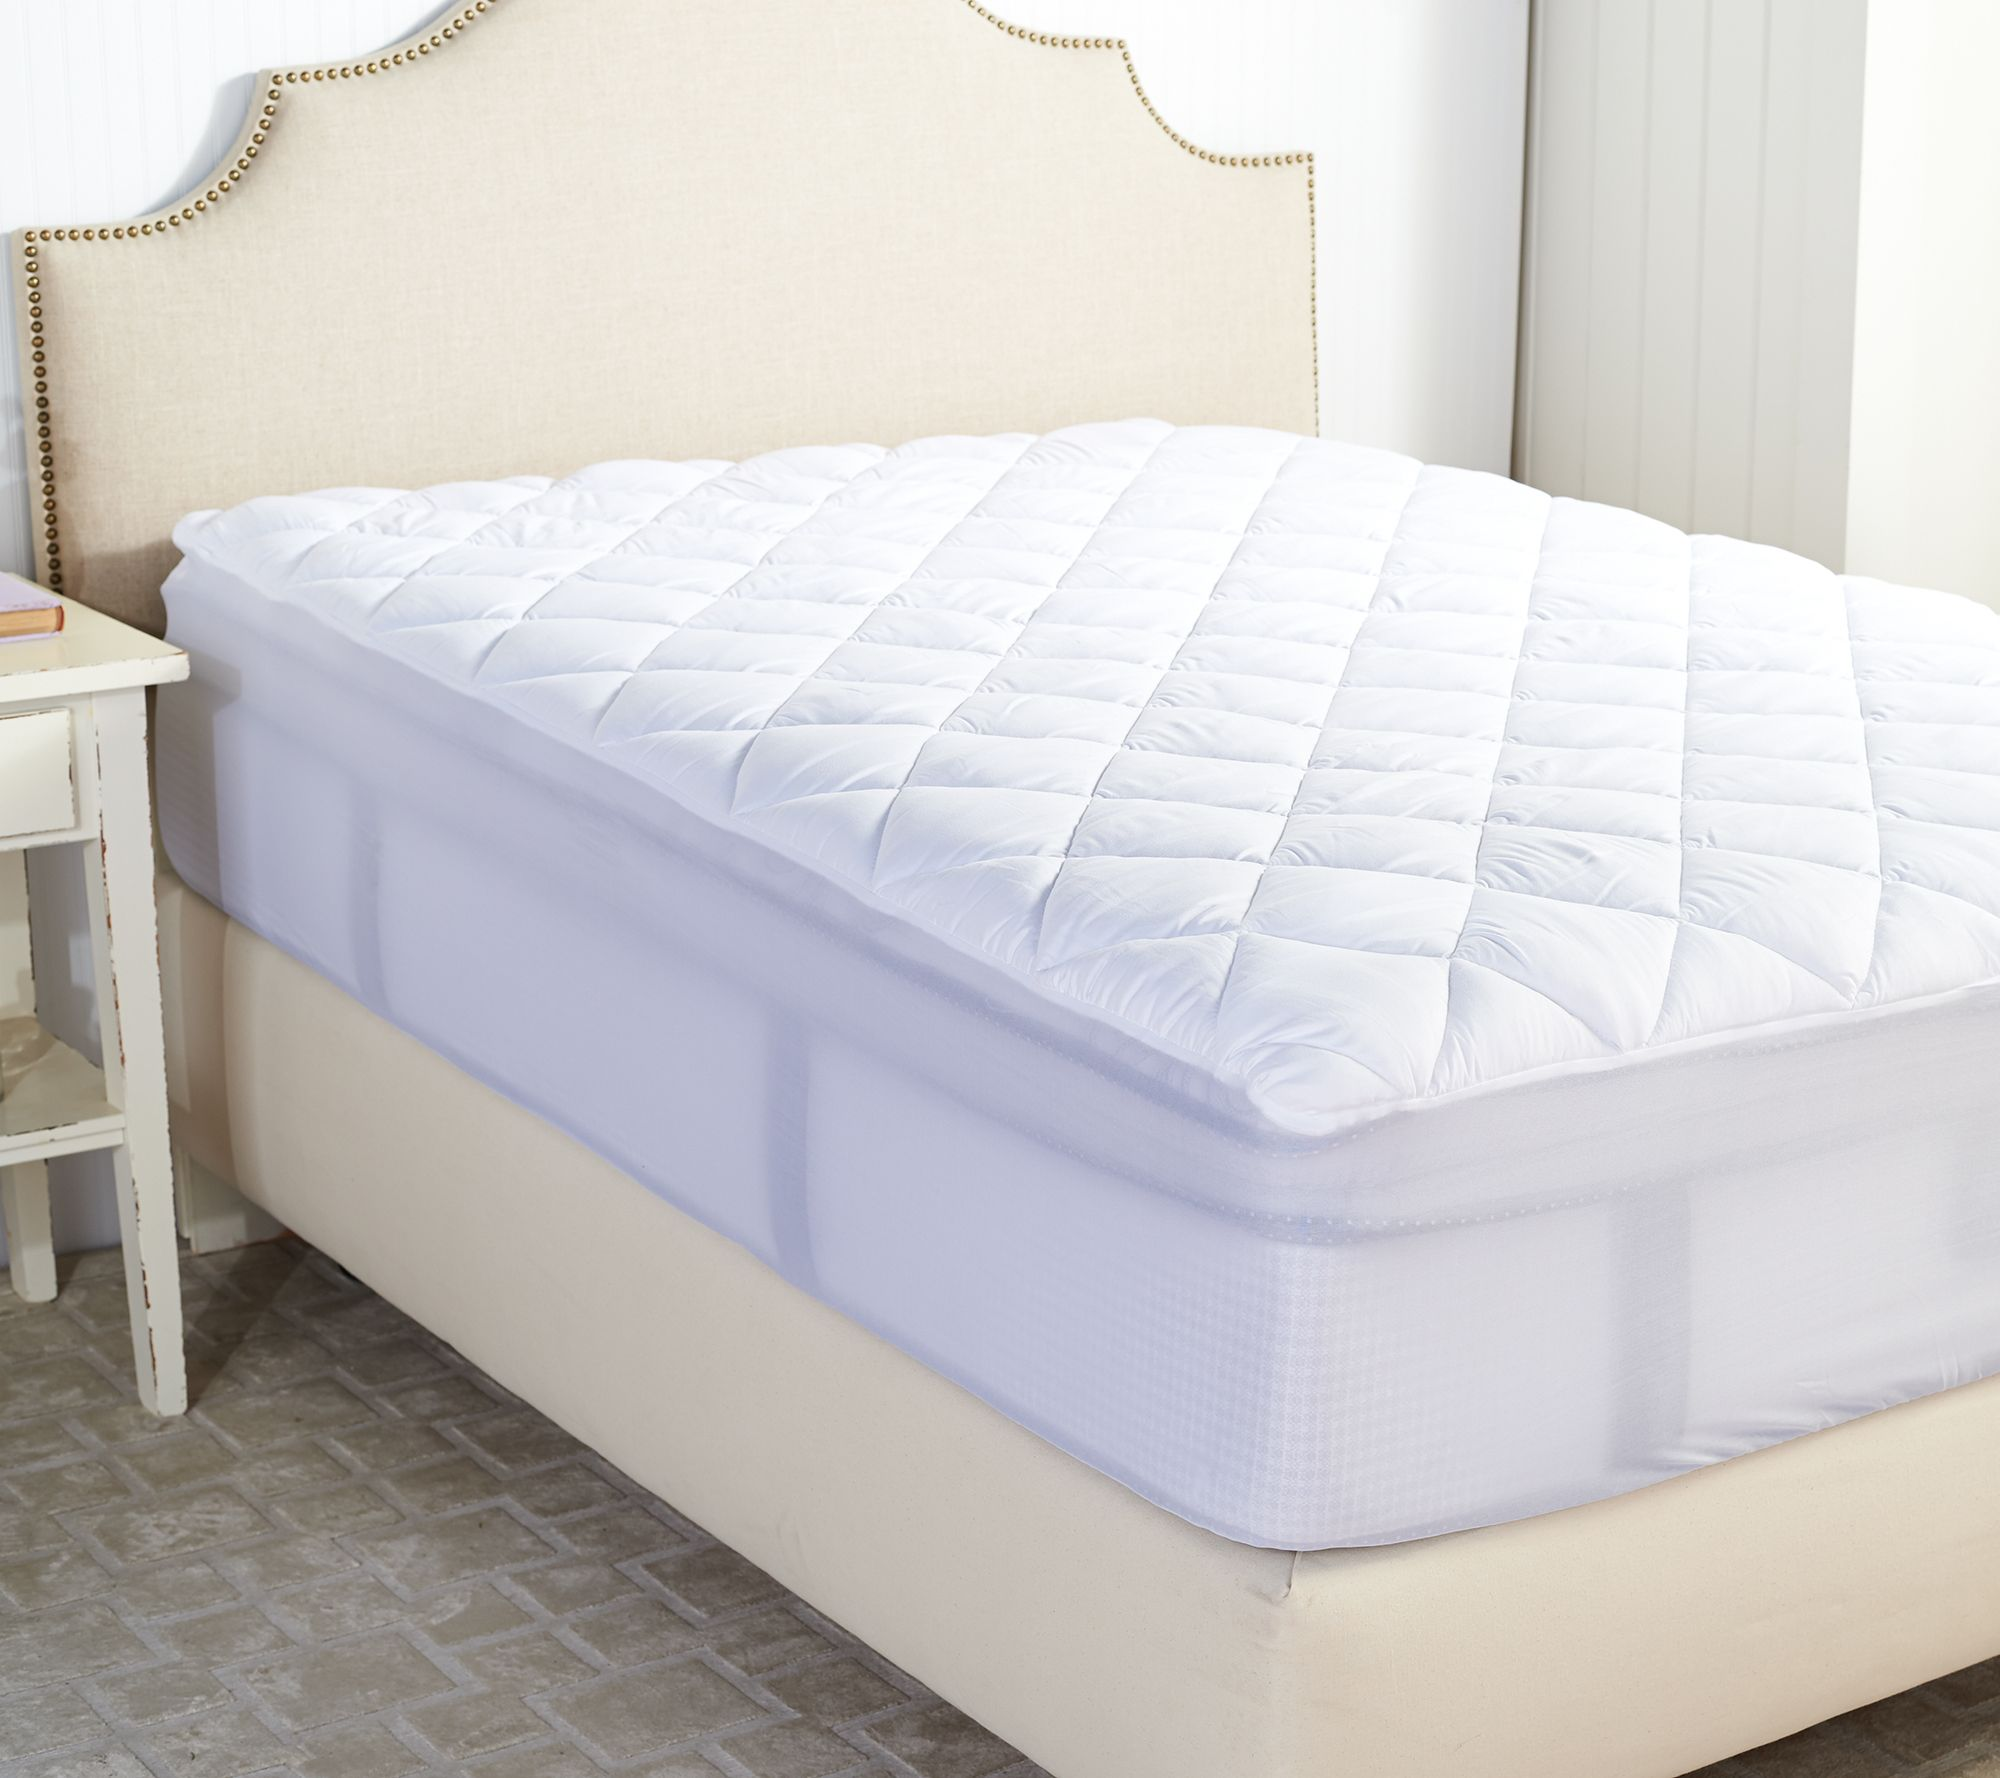 Serta Perfect Sleeper Queen Mattress Pad with Nanotex Technology - Page 1 —  QVC.com